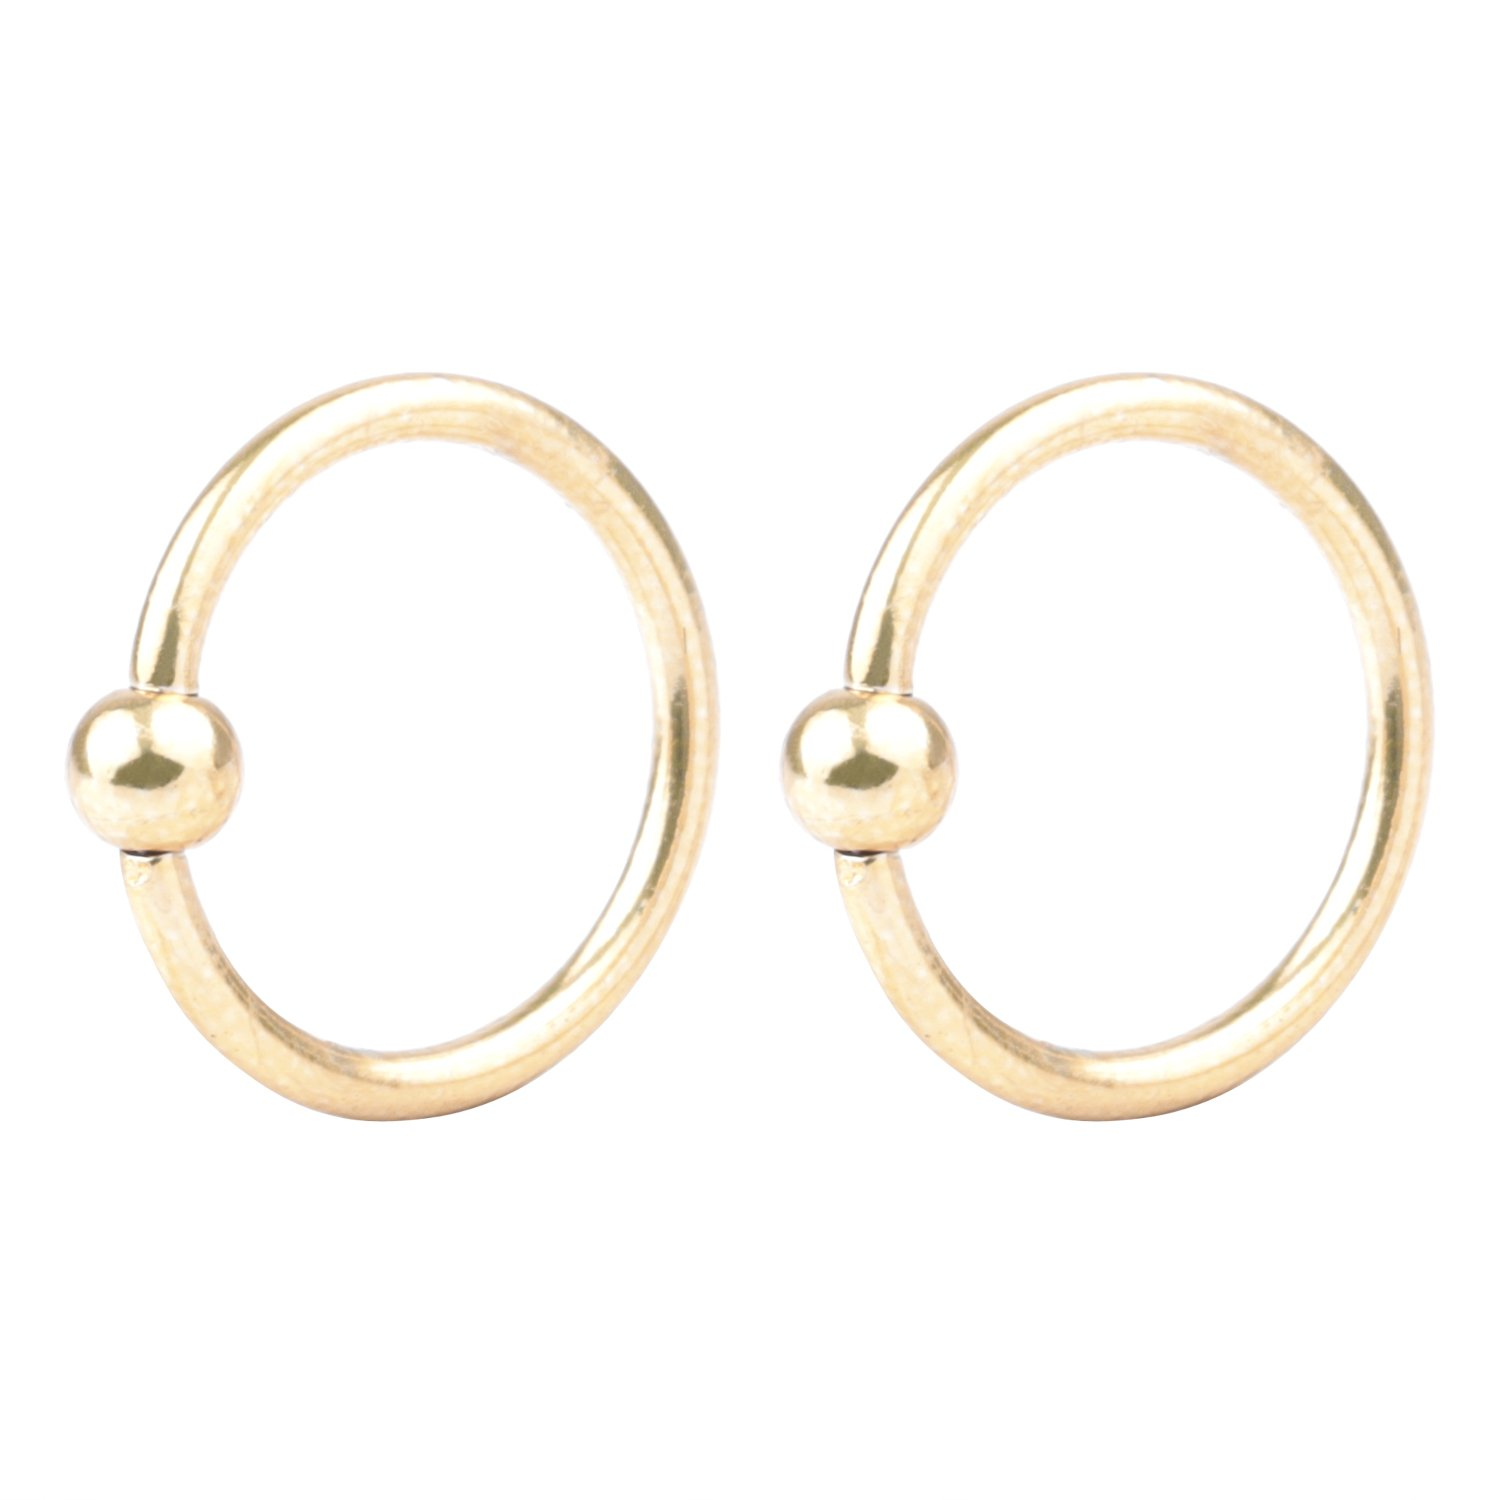 16G Surgical Stainless Captive Bead Ring CBR Hoop Helix Tragus Ear Lobe Earring Nose Ring 3mm Ball 6mm